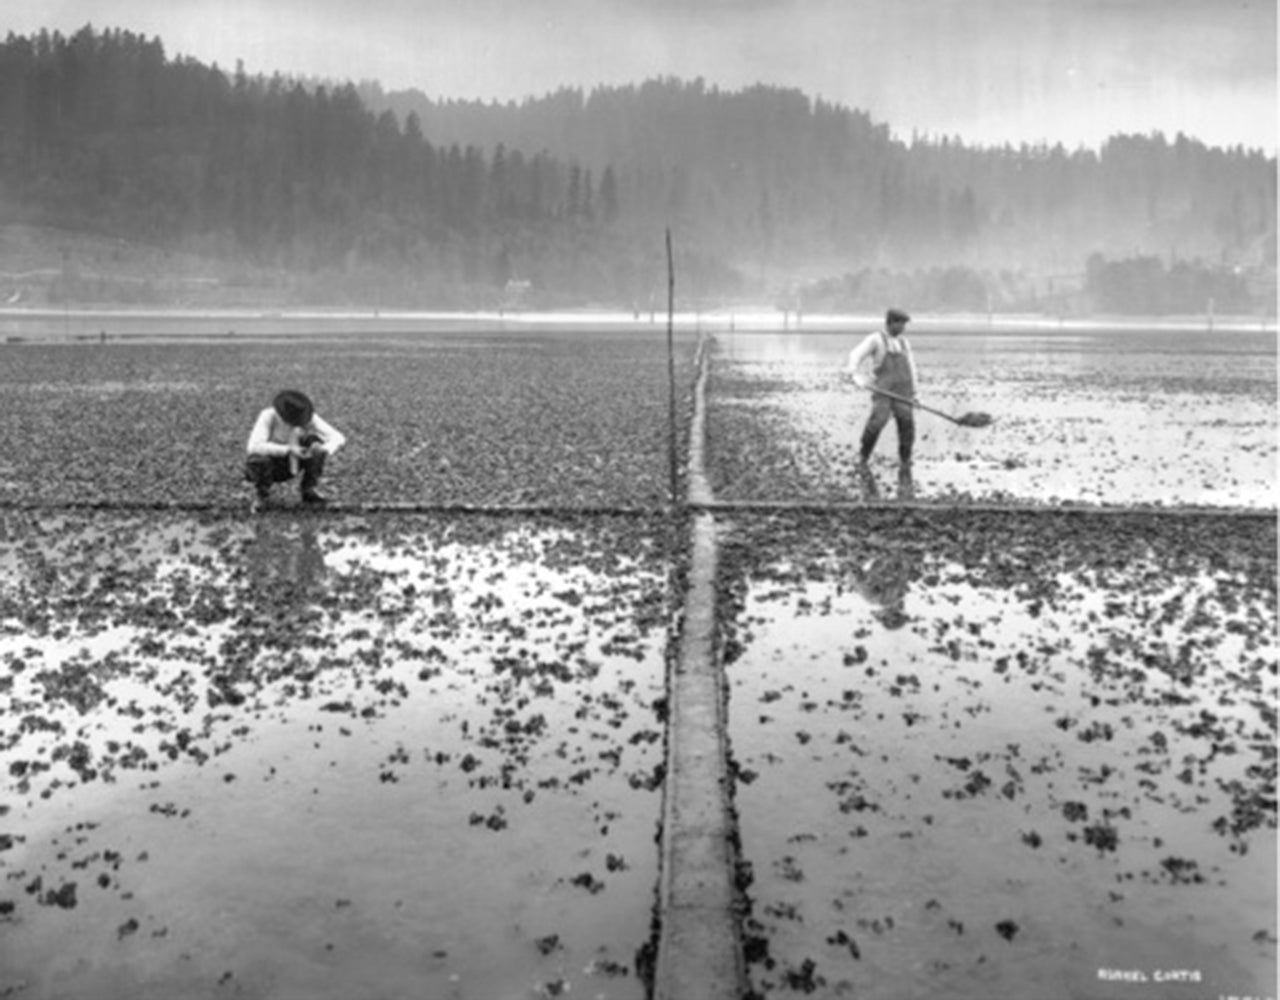 asahel curtis, oyster farming in south sound 1910